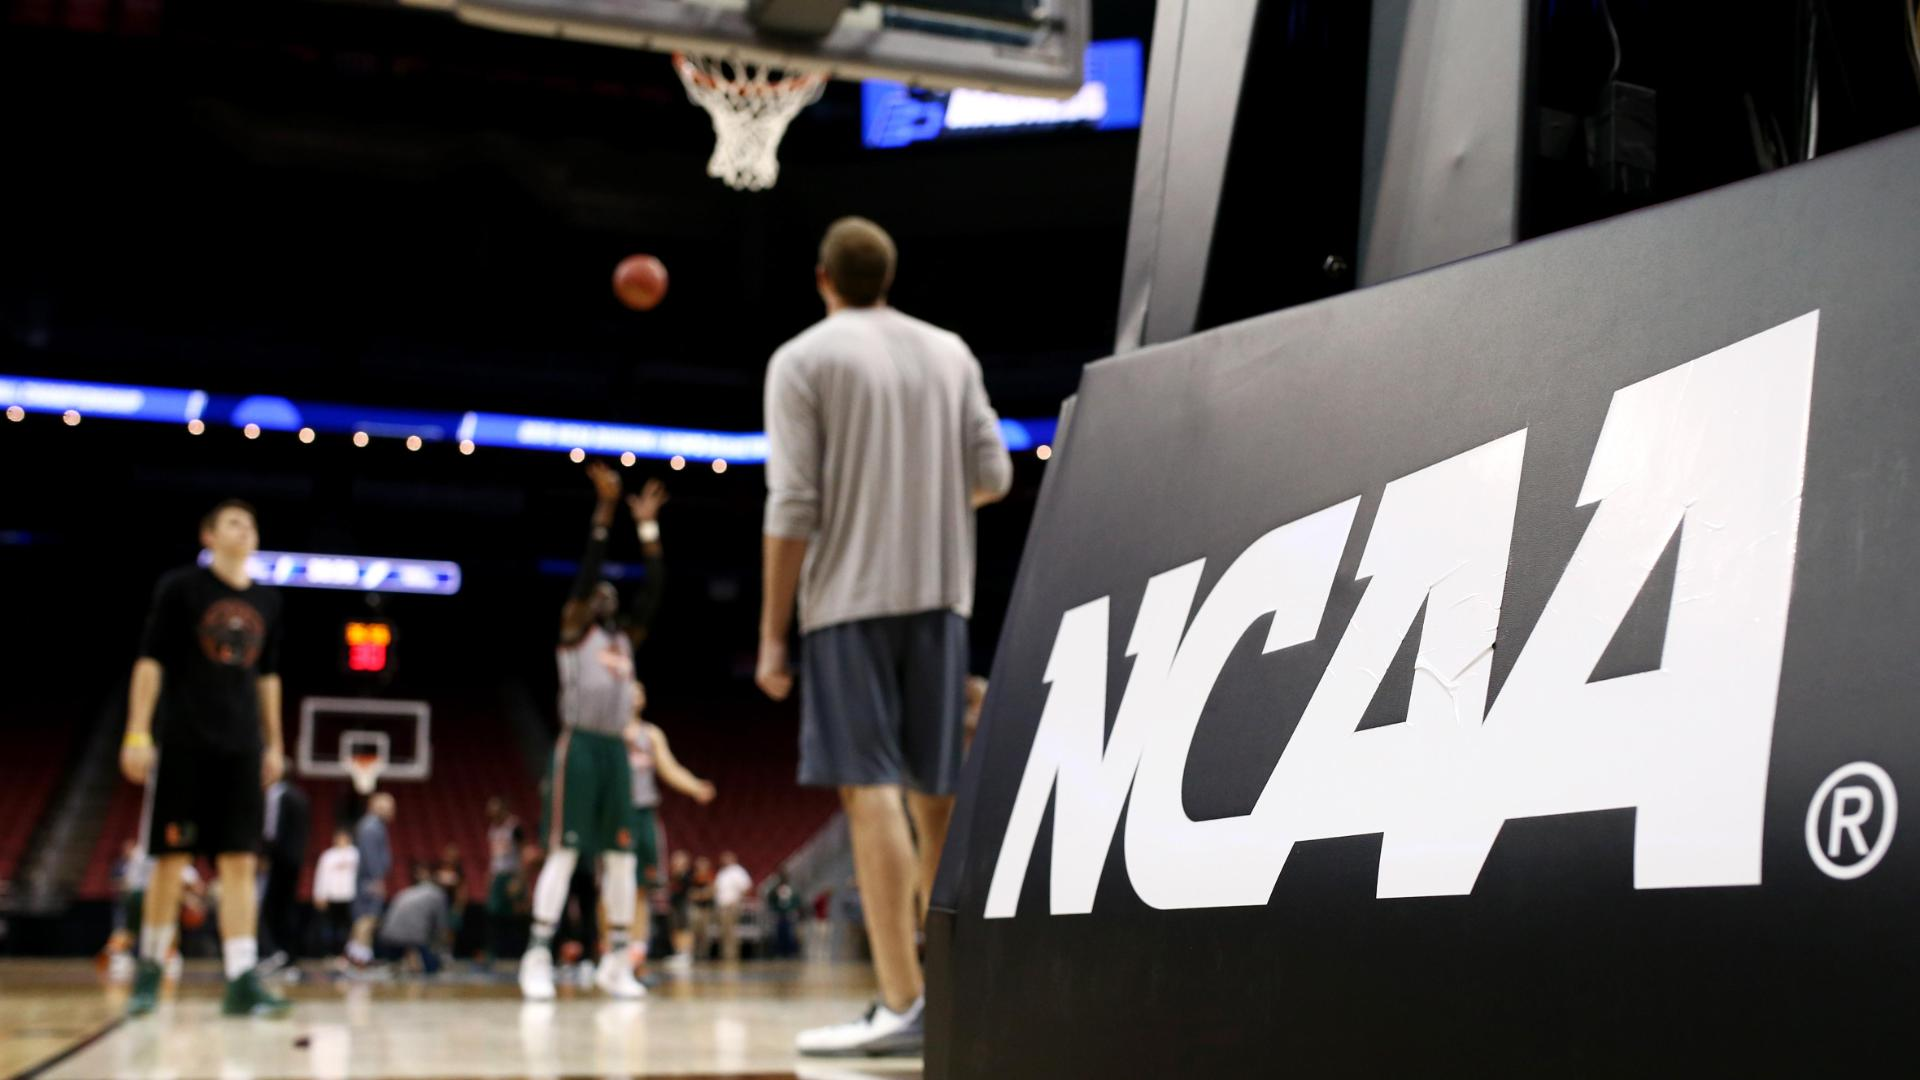 Players receiving benefits could impact college basketball immediately